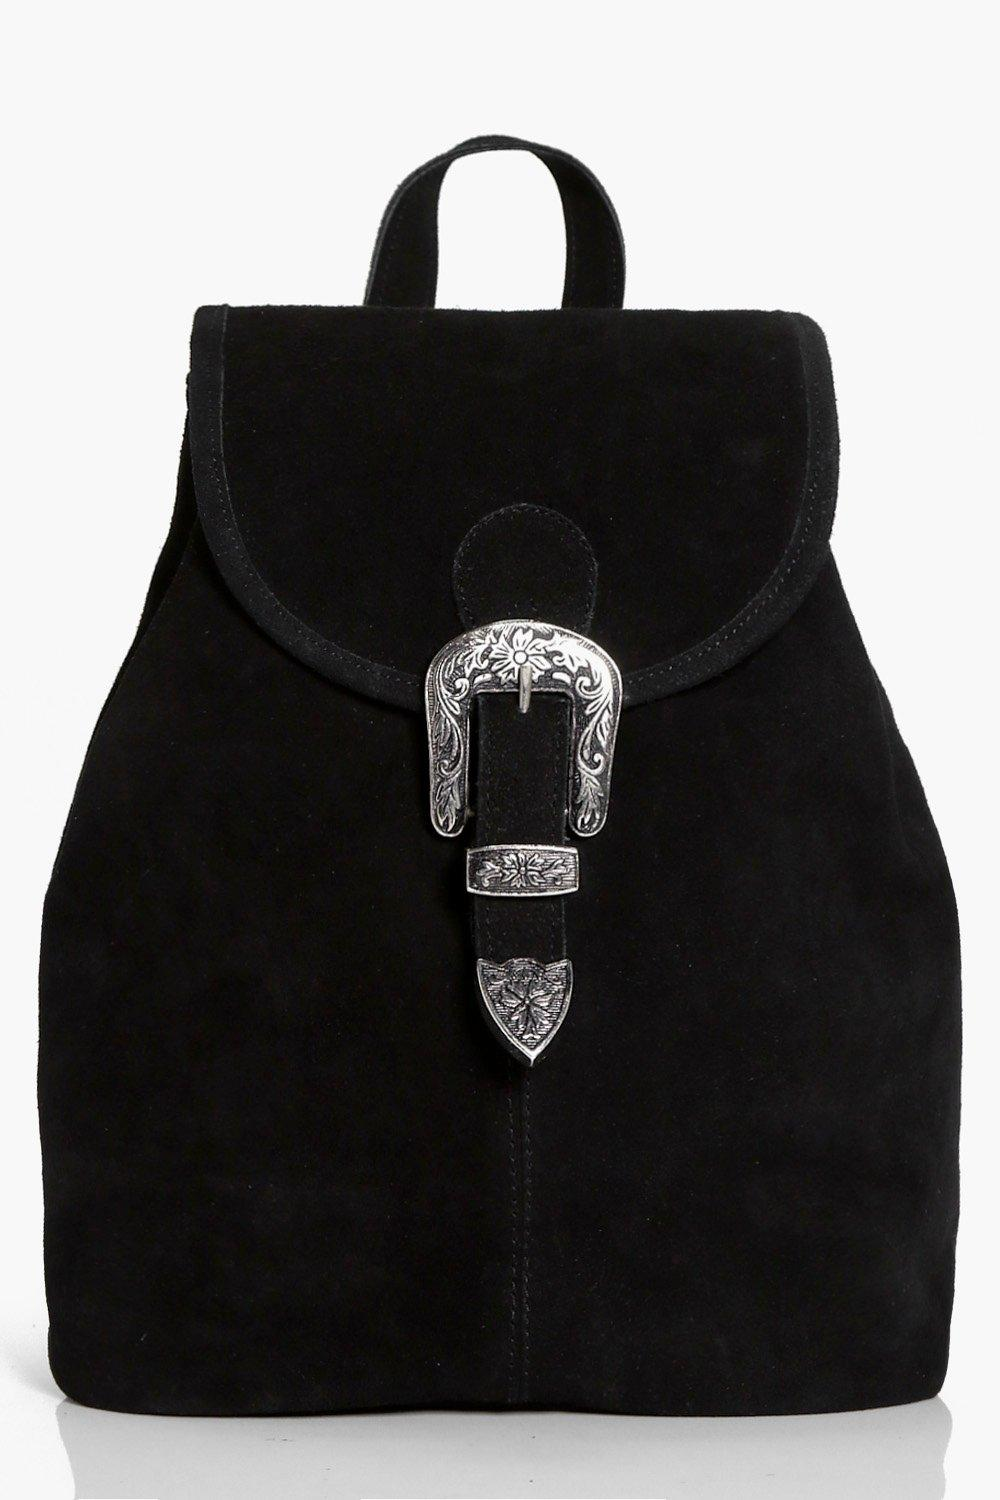 Boutique Suede Buckle Detail Backpack - black - Po